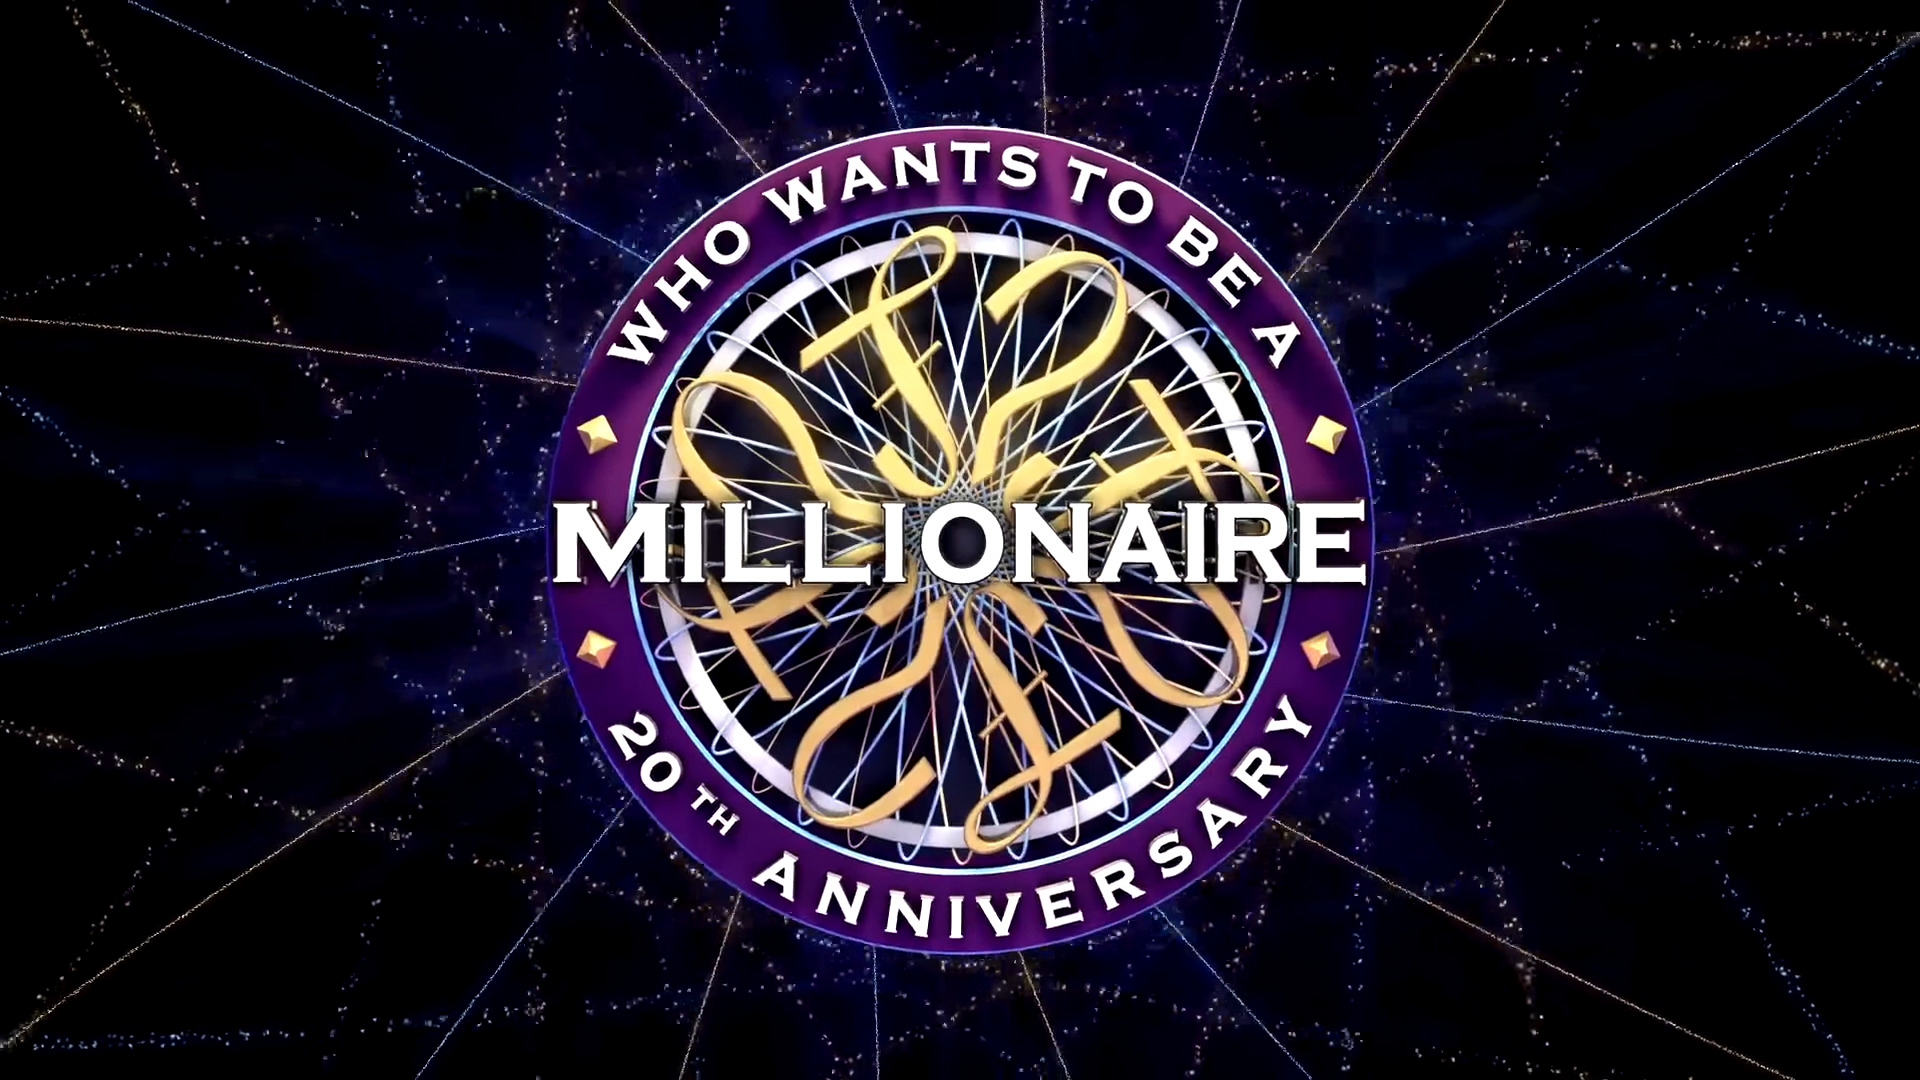 who wants to be a millionaire Who wants to be a millionaire you can probably guess from the title what this esl activity is all about split your classroom into groups (i use 4 groups of 10 but it can be easily changed to suit how many students you have) and then have them take turns answering true or false questions until they choose to stop and 'bank' their money or until they get a question wrong and lose everything.